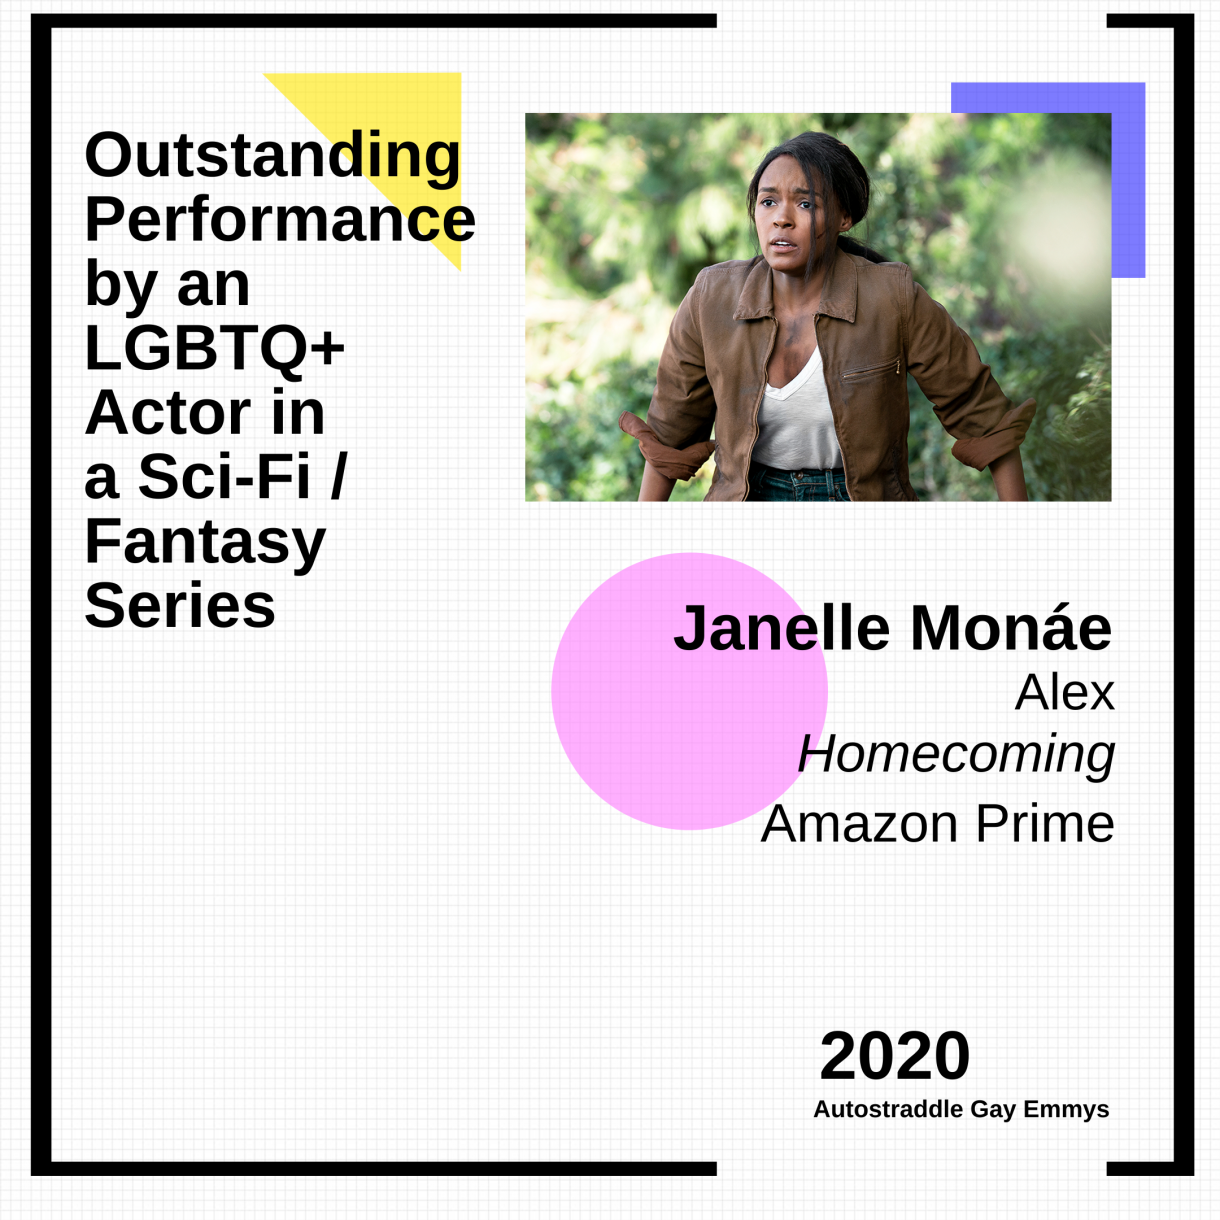 Colorful graphic announcing Outstanding Performance by an LGBTQ+ Actor in a Sci-Fi/Fantasy Show: Janelle Monae as Alex, Homecoming. Picture of Janelle Monae as Alex, wearing a white top and green jacket in front of some trees.